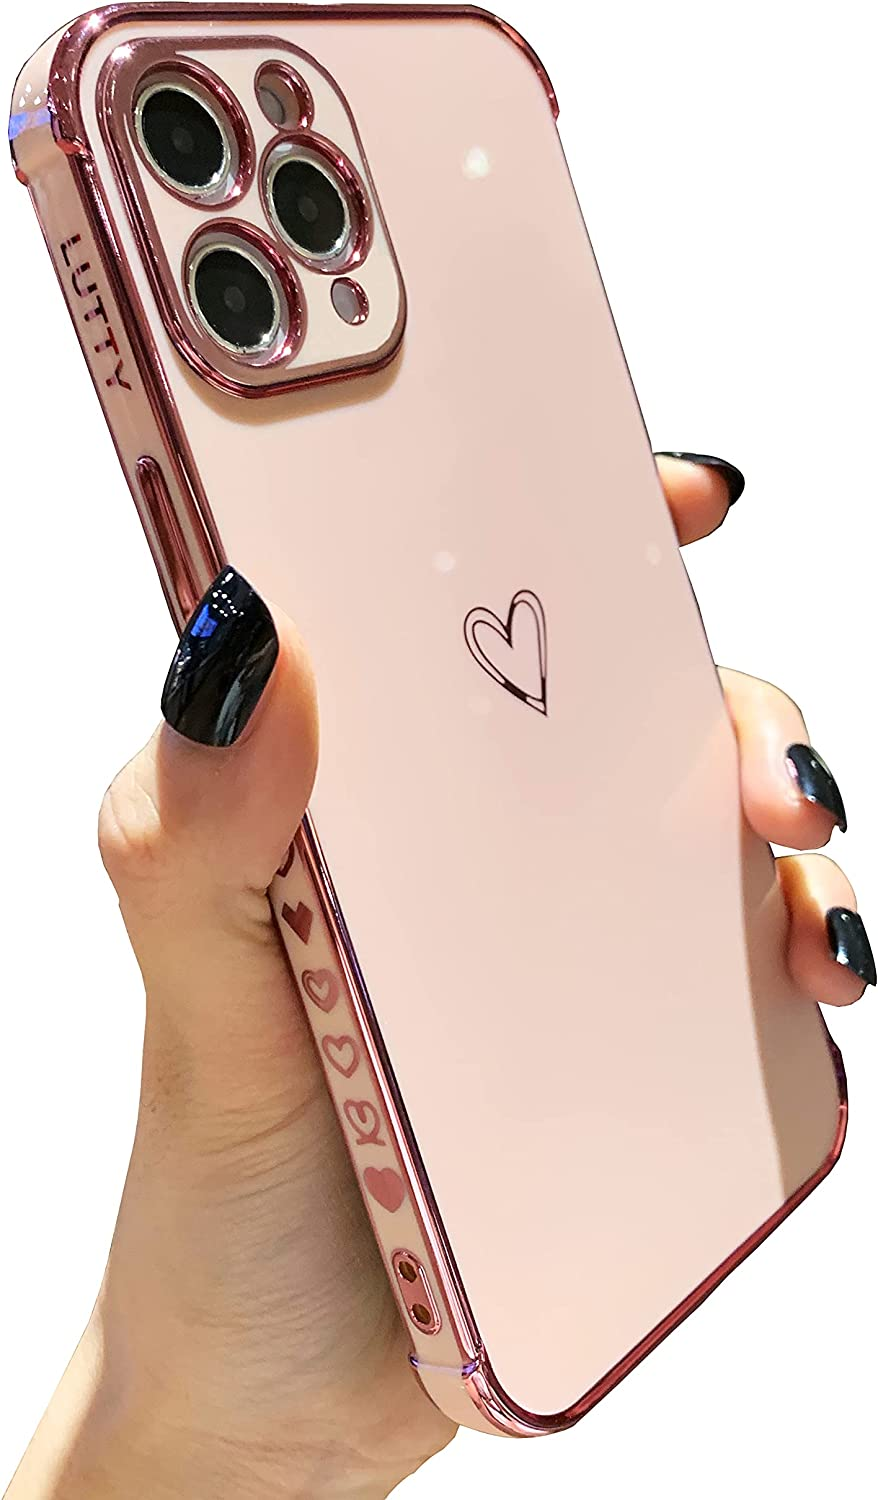 LUTTY Compatible with iPhone 11 Pro Max Case Cute, Soft Tup Phone 11Pro Max for Women, Raised Corners Bumper & Full Reinforced Camera Protection Cover for iPhone 11 Pro Max (6.5 Inch) -Candy Pink